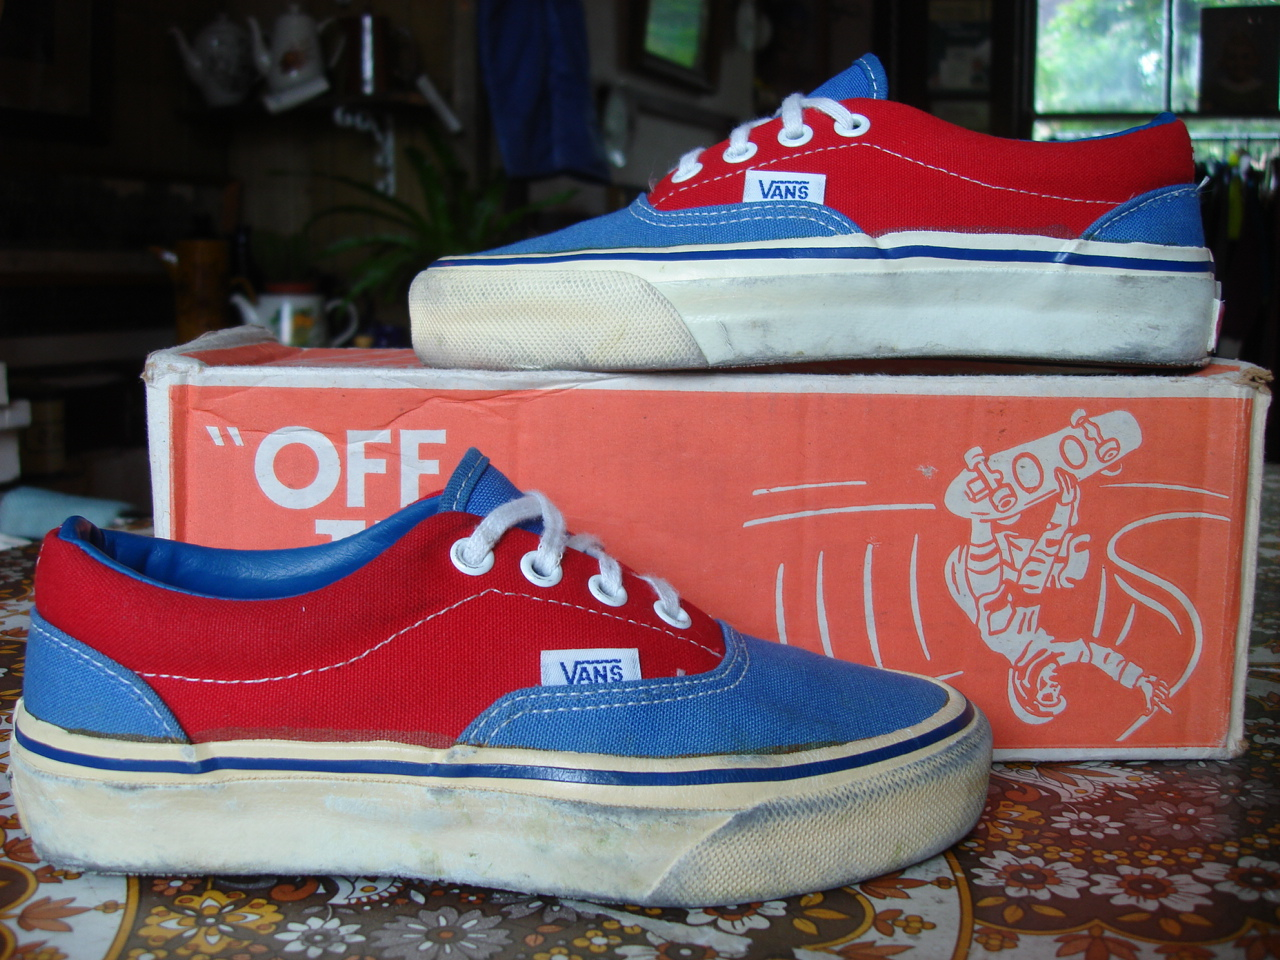 Vans Dogtown Shoes